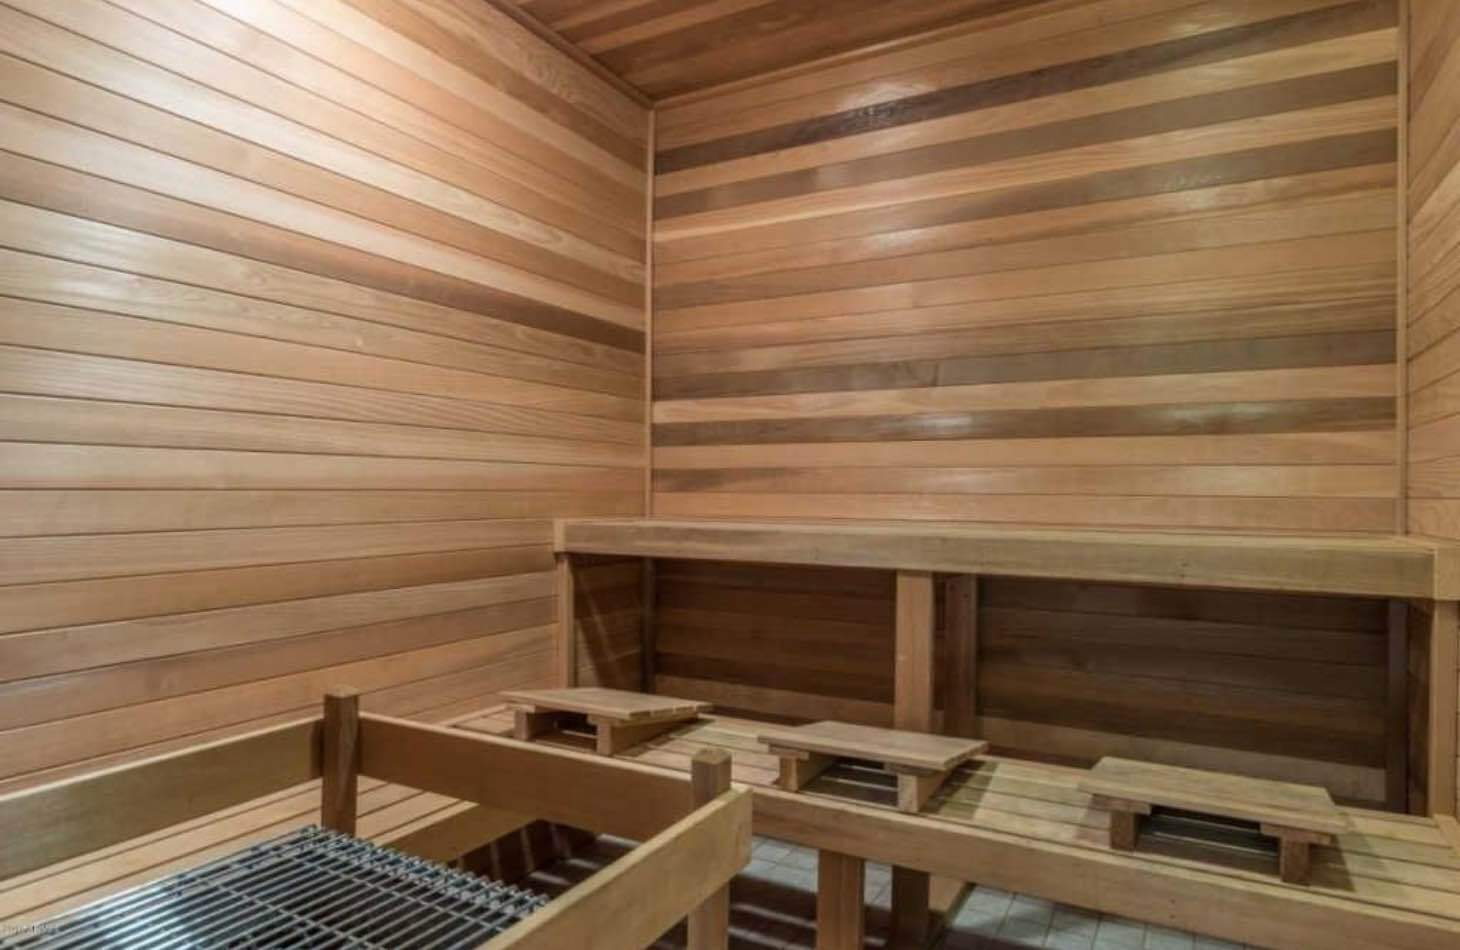 hot sauna available to all clients receiving addiction treatment at the hope house vereda solana mansion